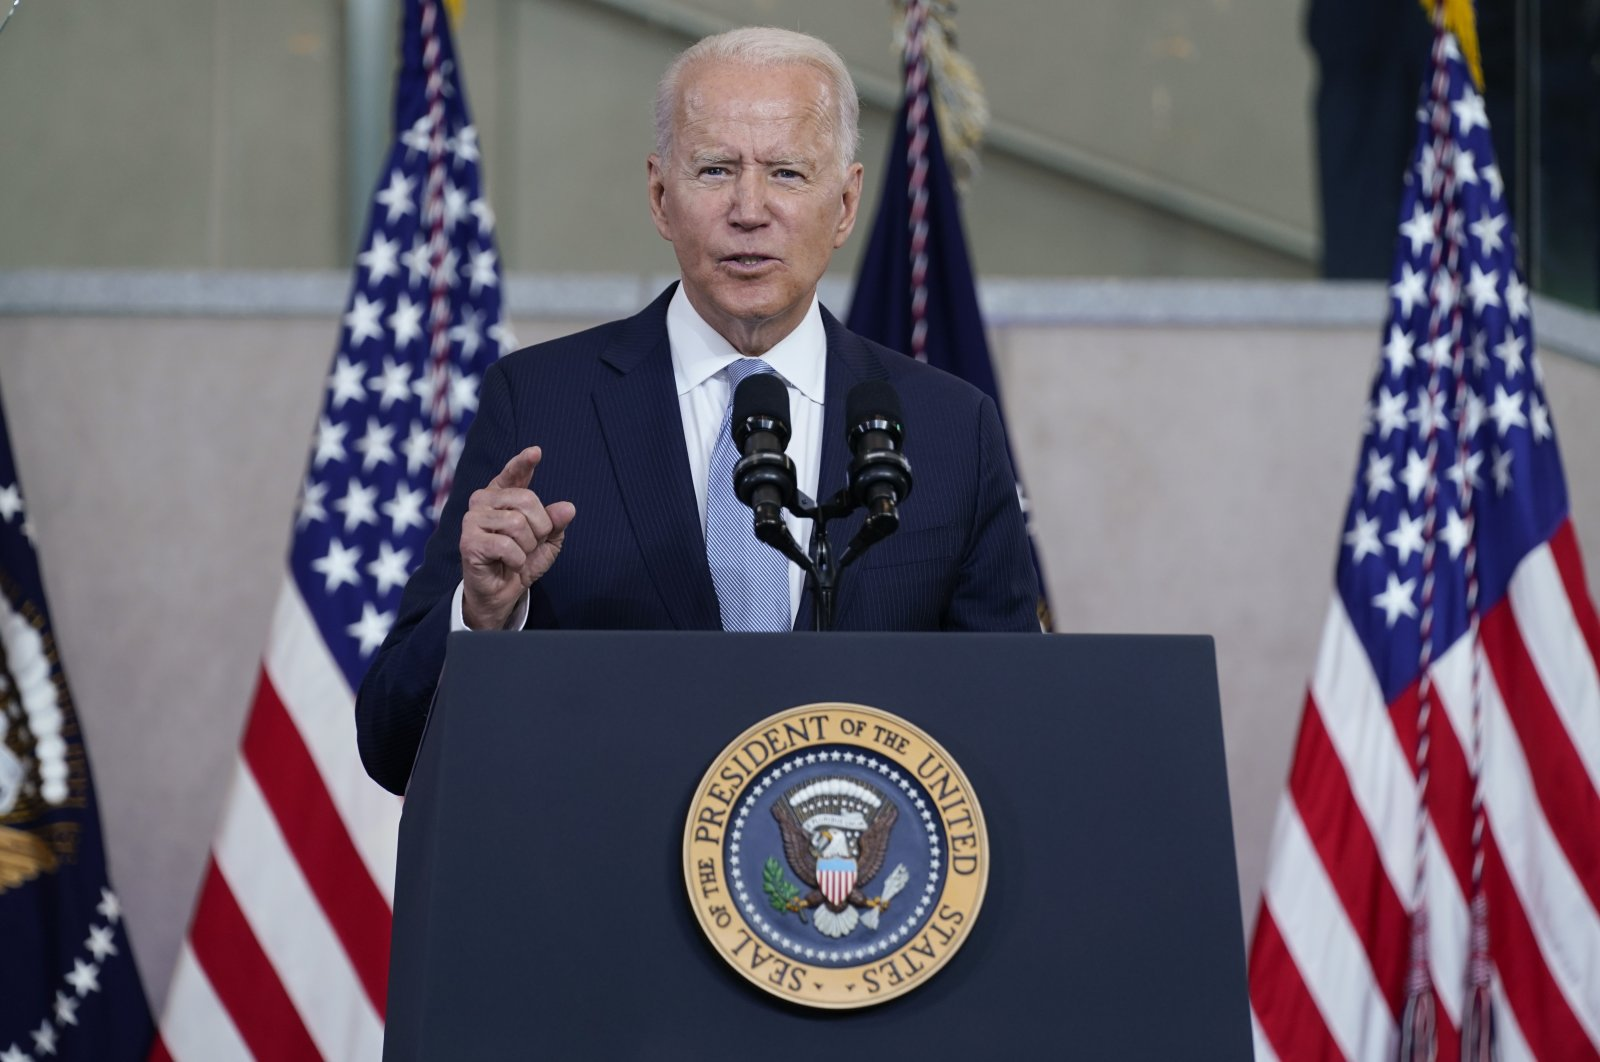 President Joe Biden delivers a speech on voting rights at the National Constitution Center, Philadelphia, Pennsylvania, U.S.,  July 13, 2021. (AP Photo)